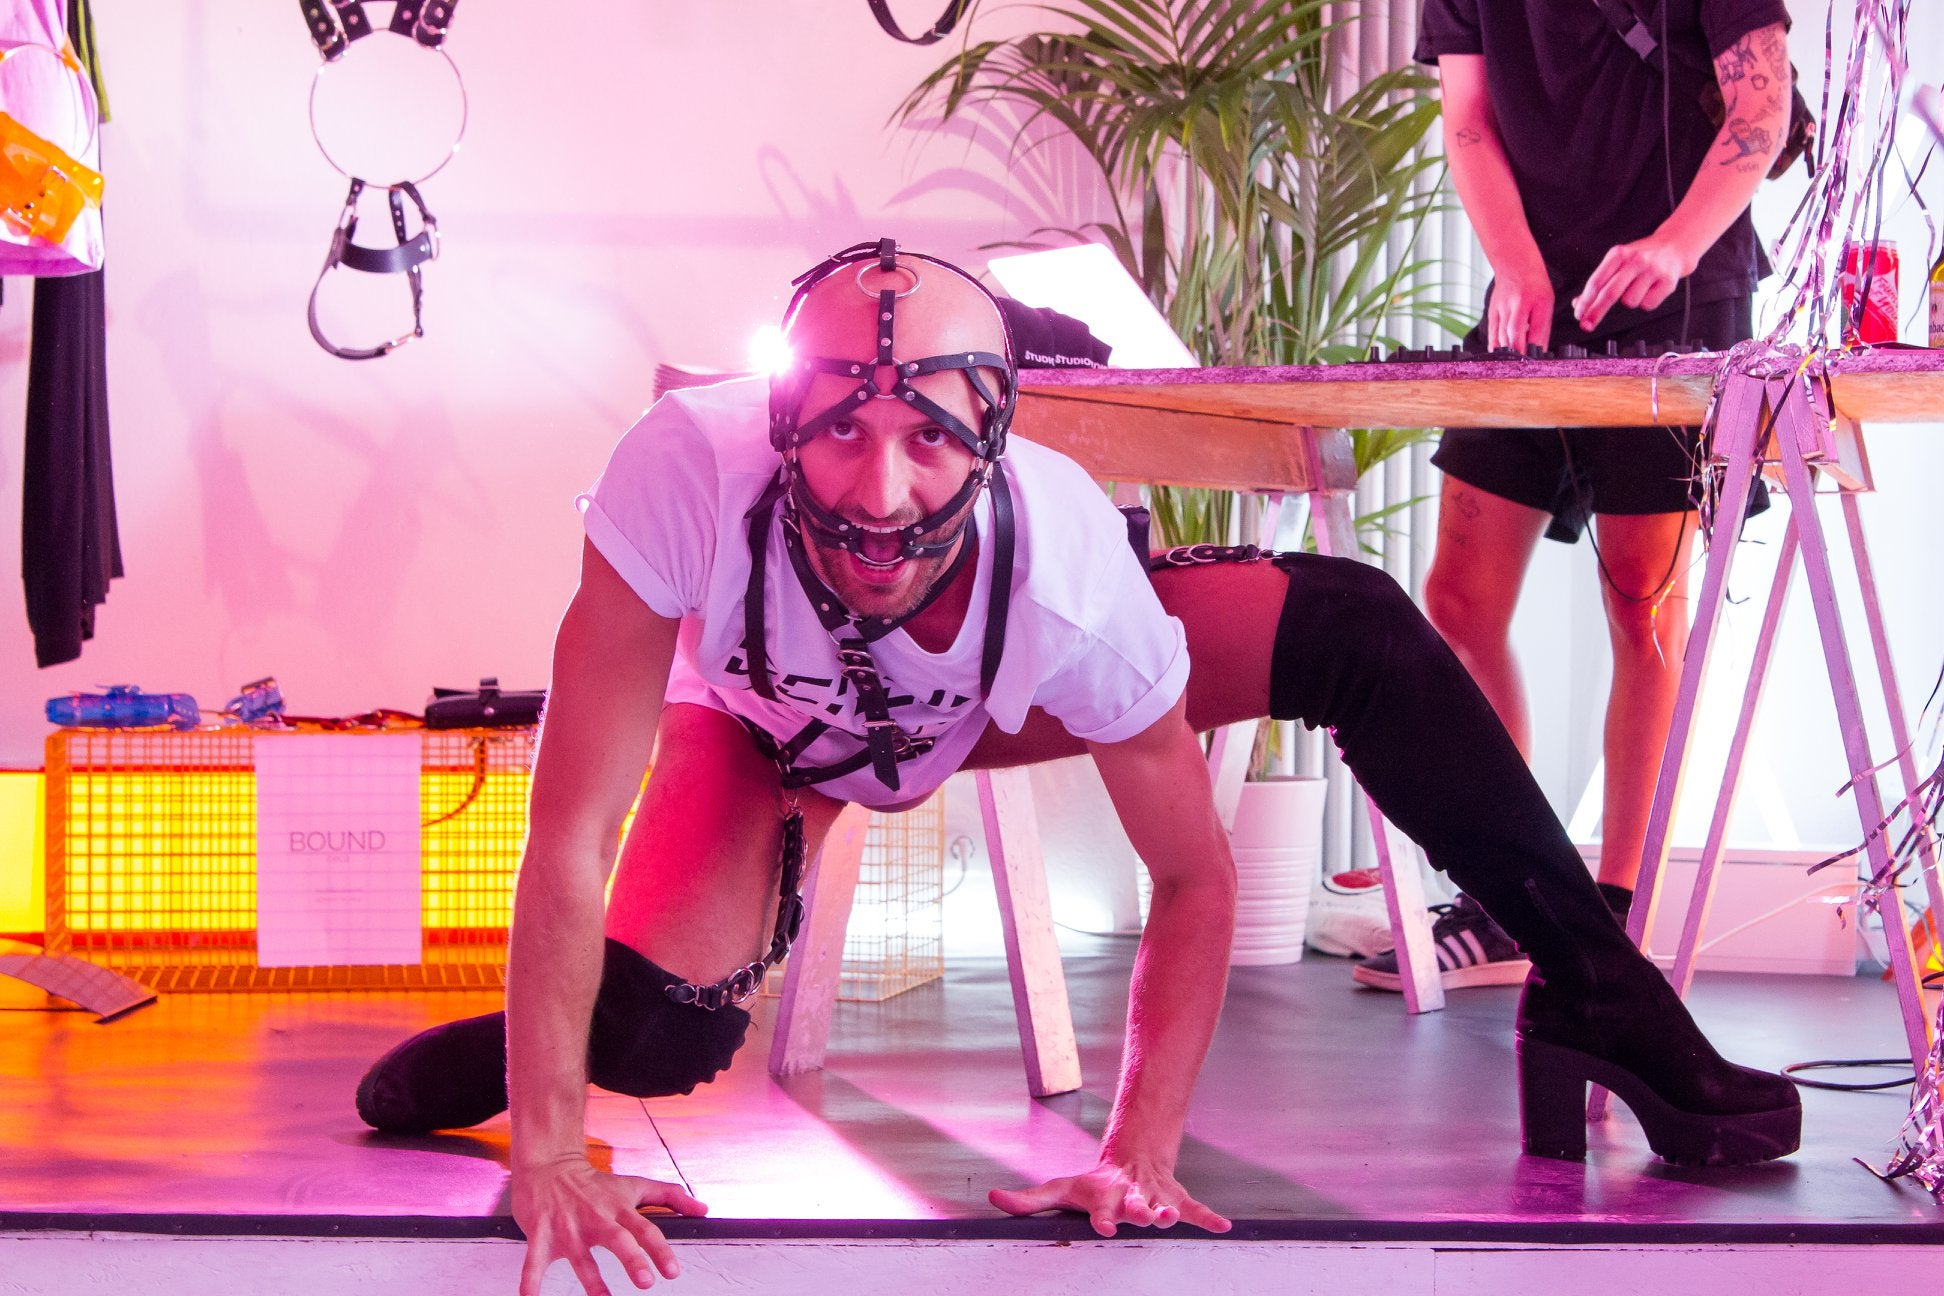 Edegar Starke dancing performance with harnesses at concept fashion store Studio183 Berlin